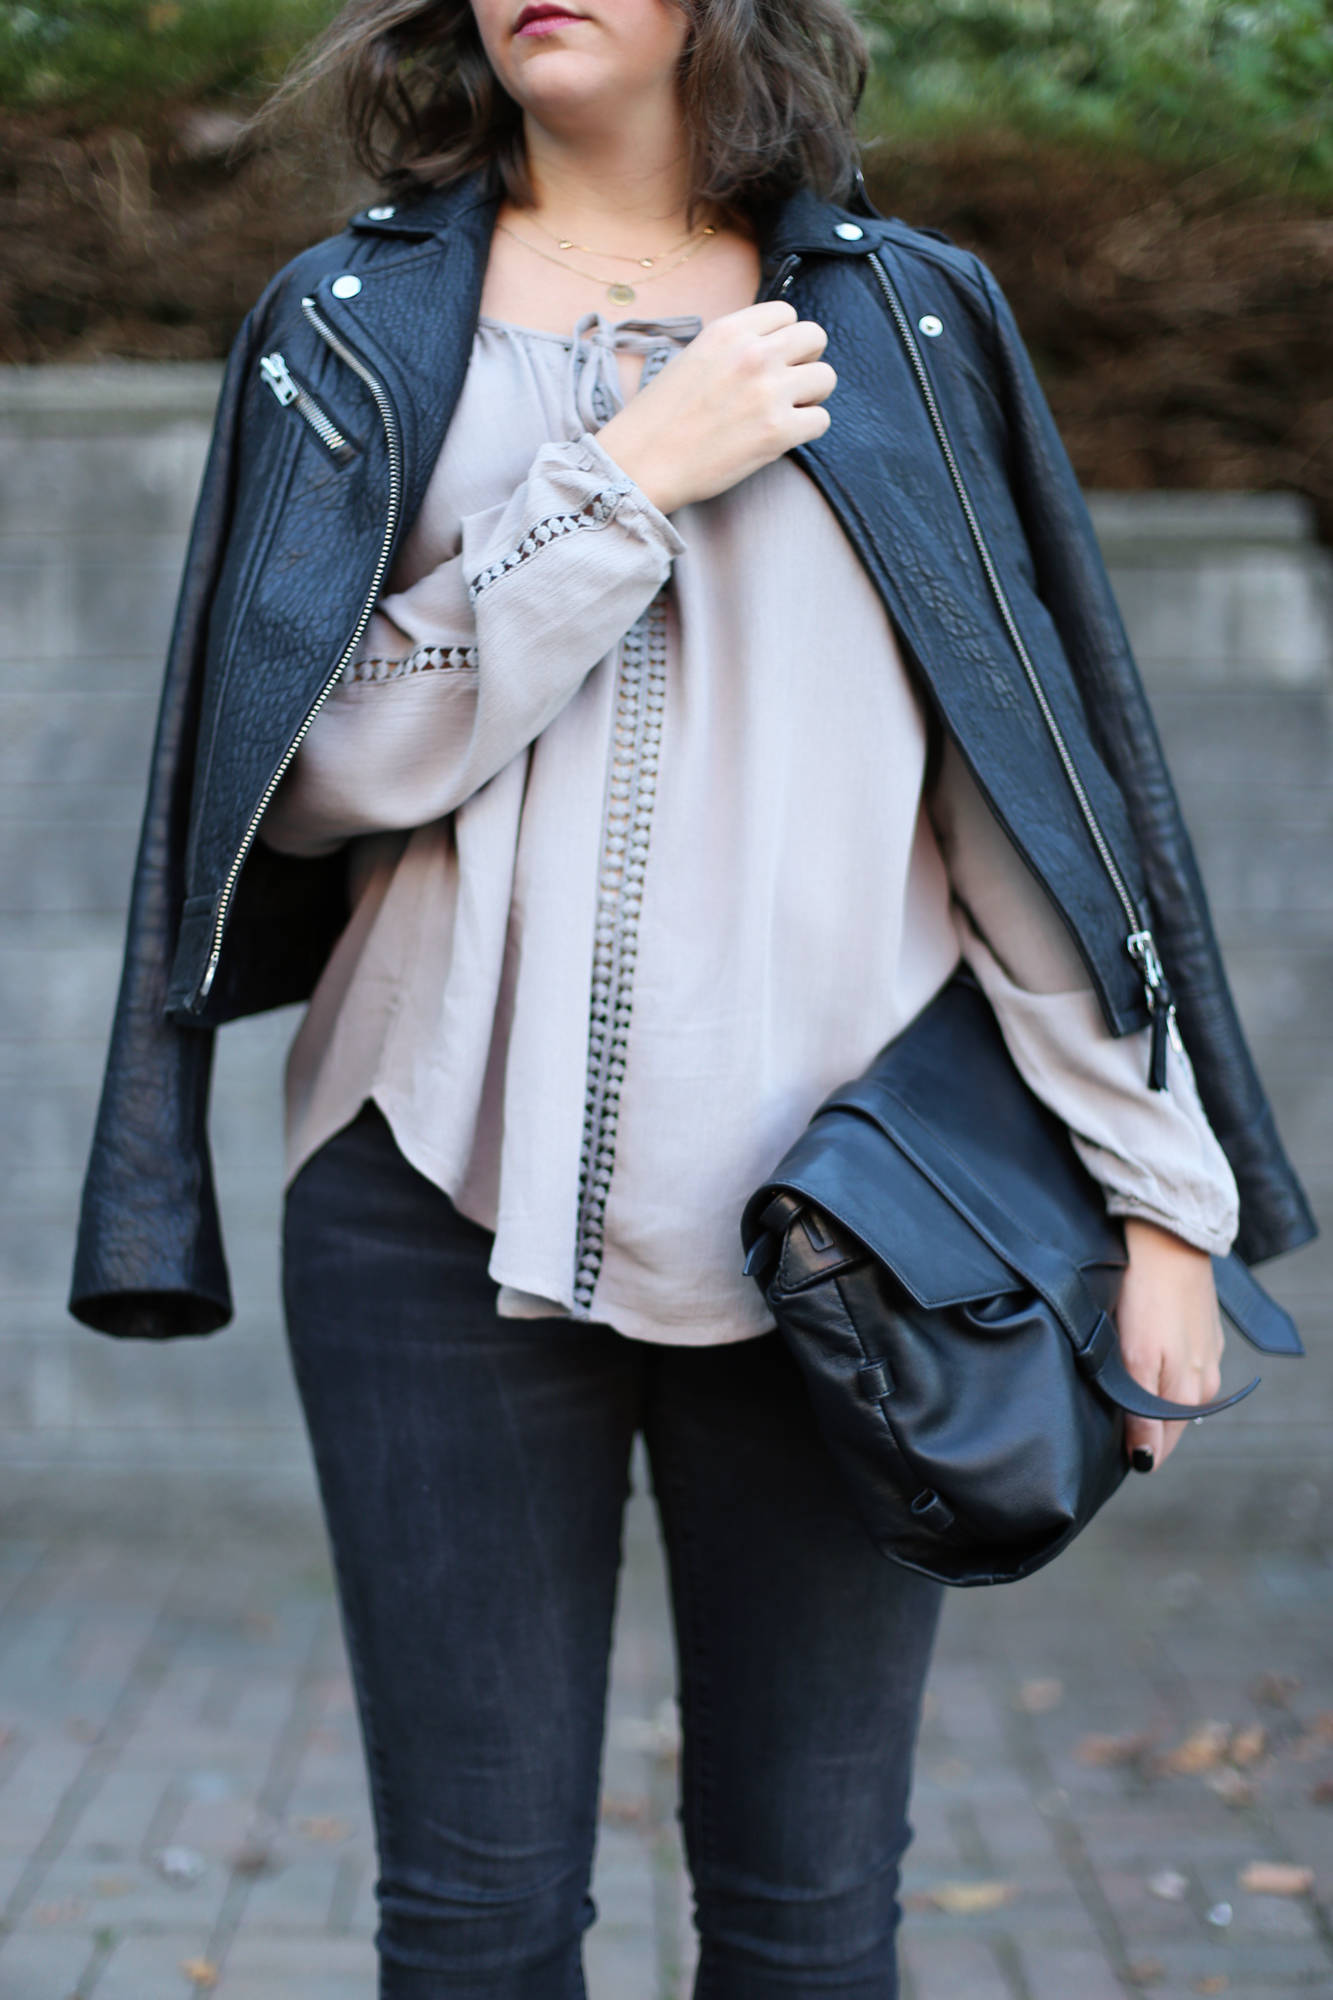 Minimalist street style: black leather moto jacket, oversized blouse, black nails, and an oversized bag.